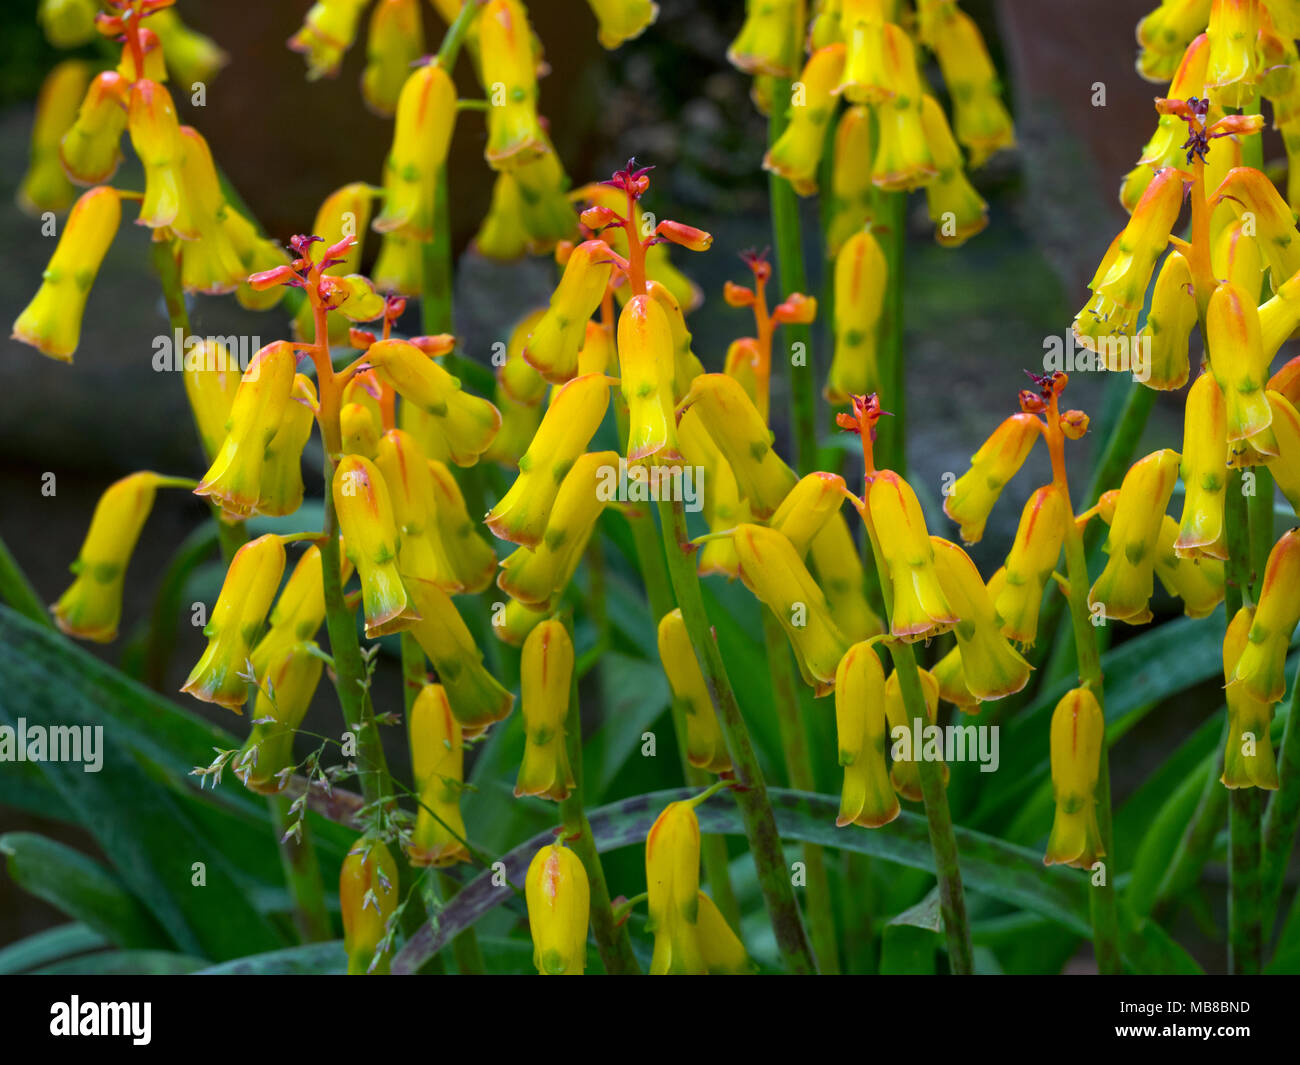 is a species of flowering plant in the family Asparagaceae - Stock Image